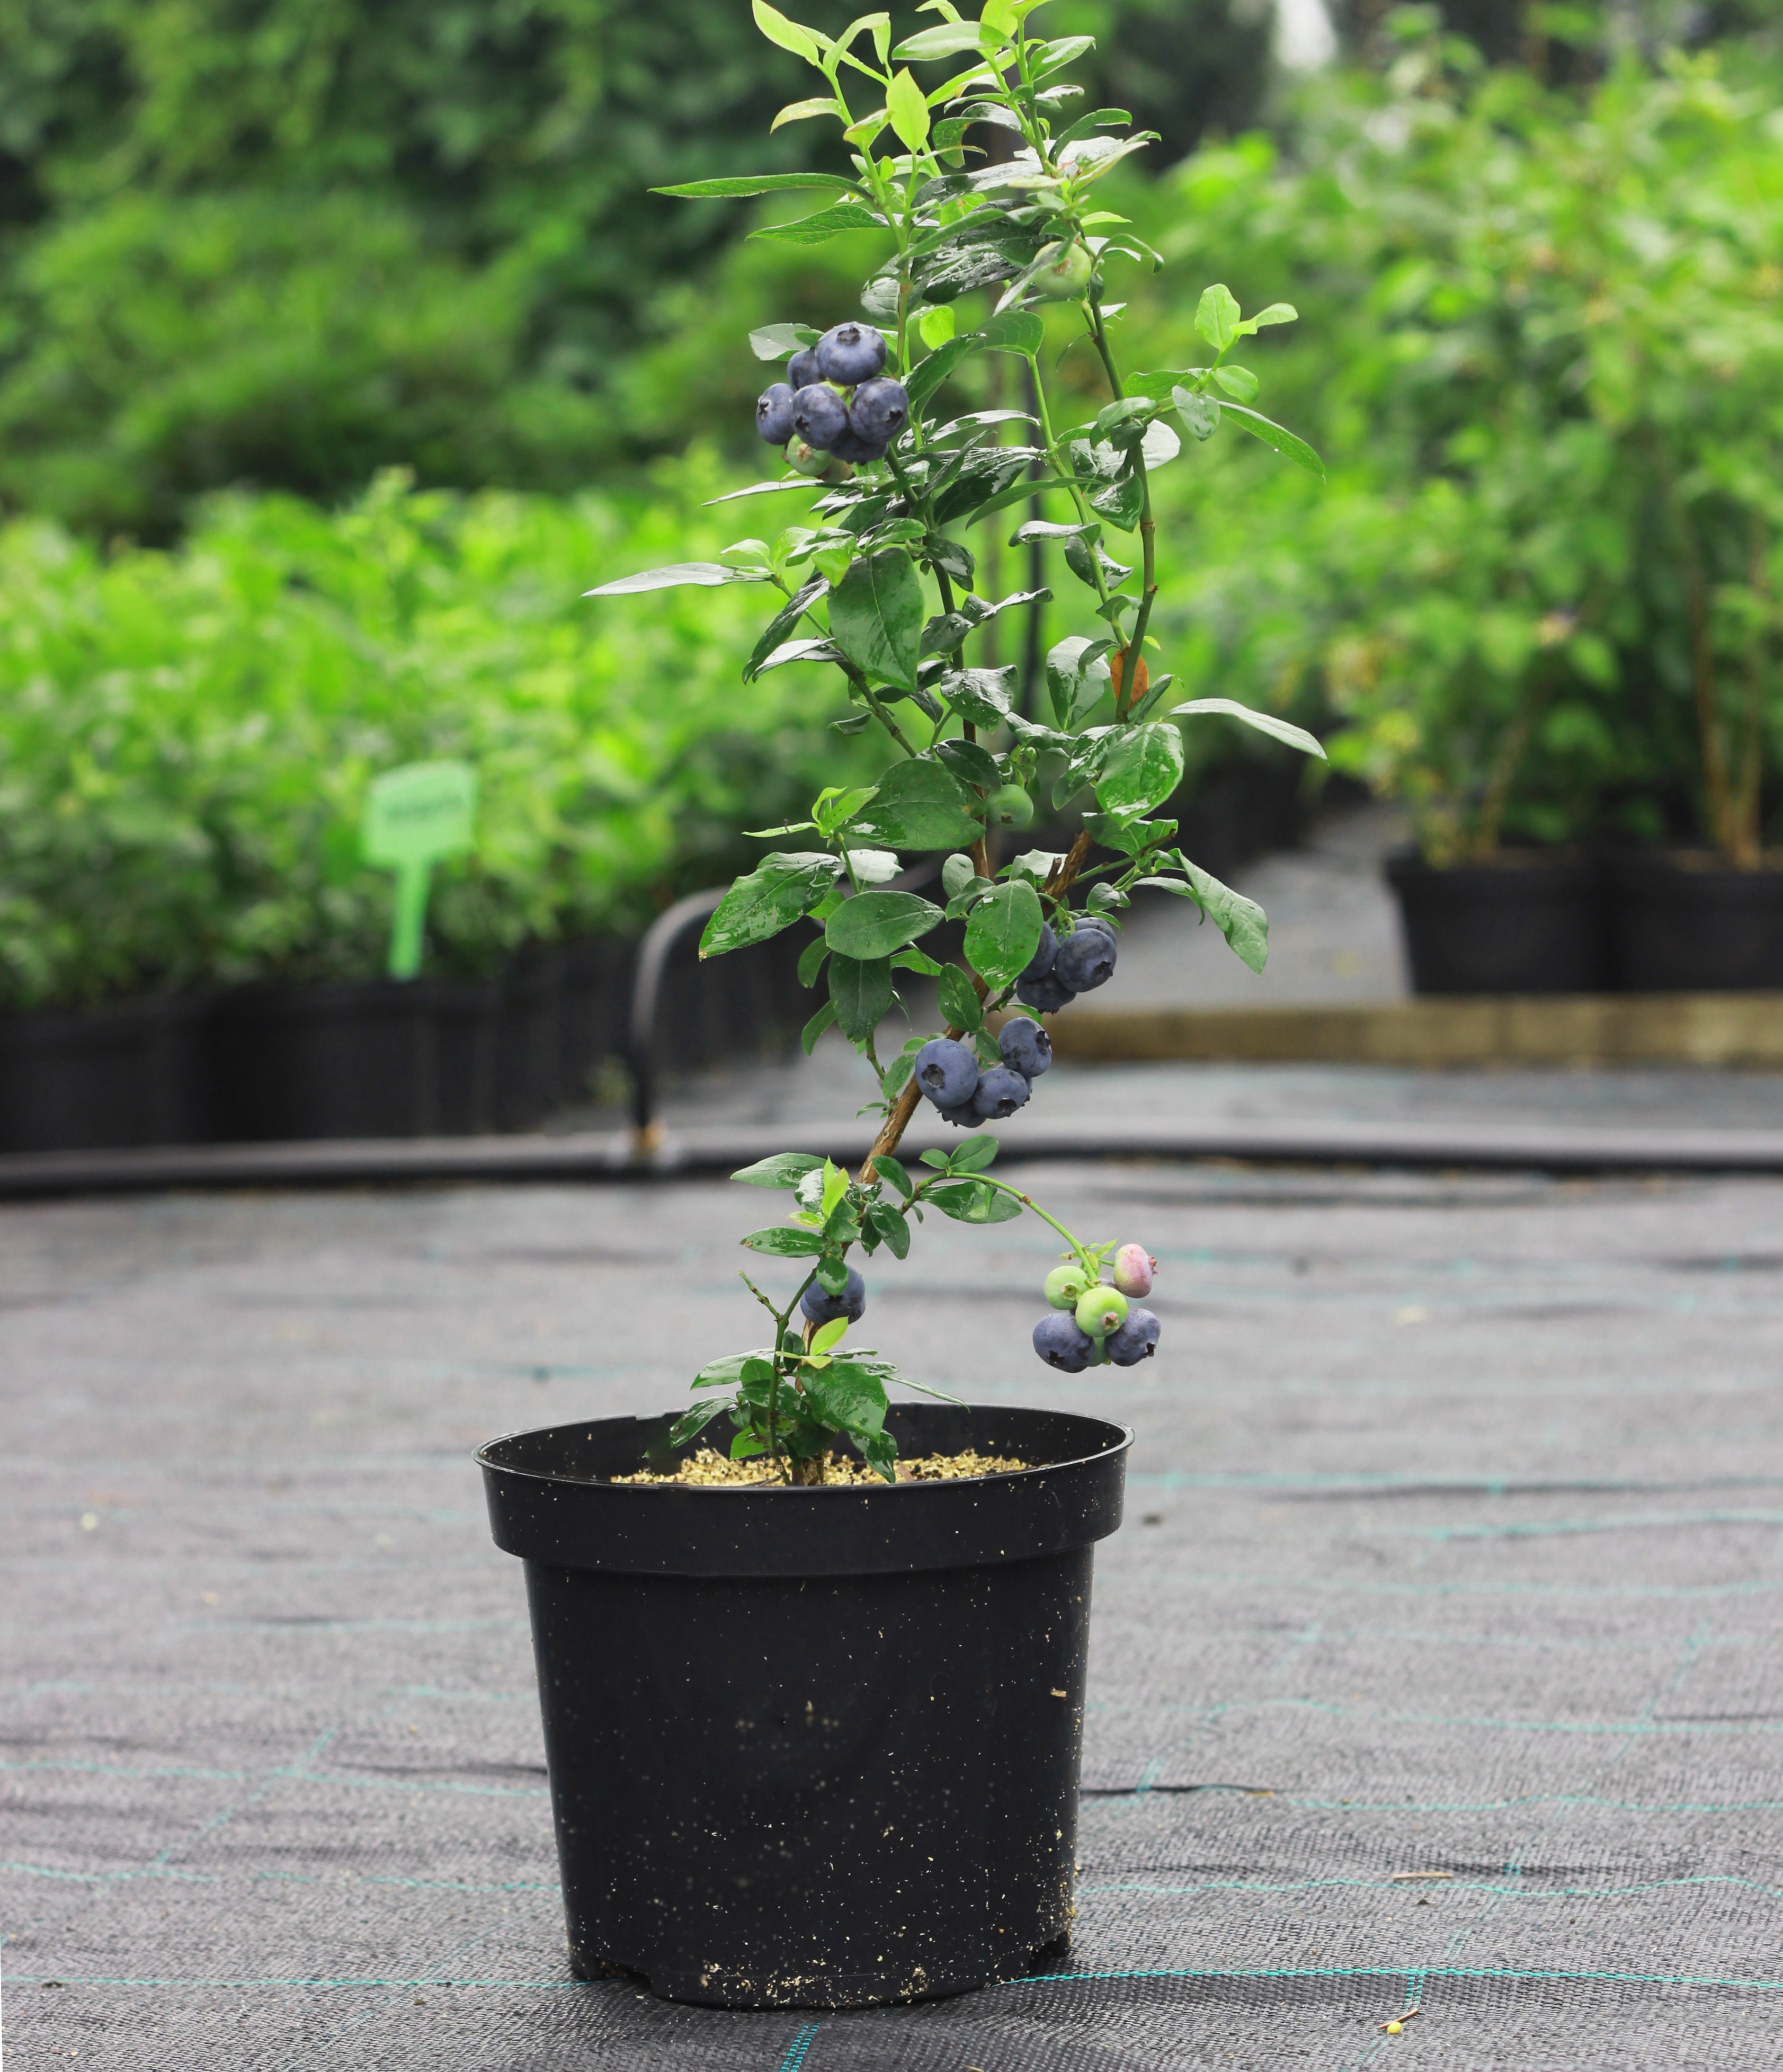 Blueberry plant with fruits in the nursery in garden centre